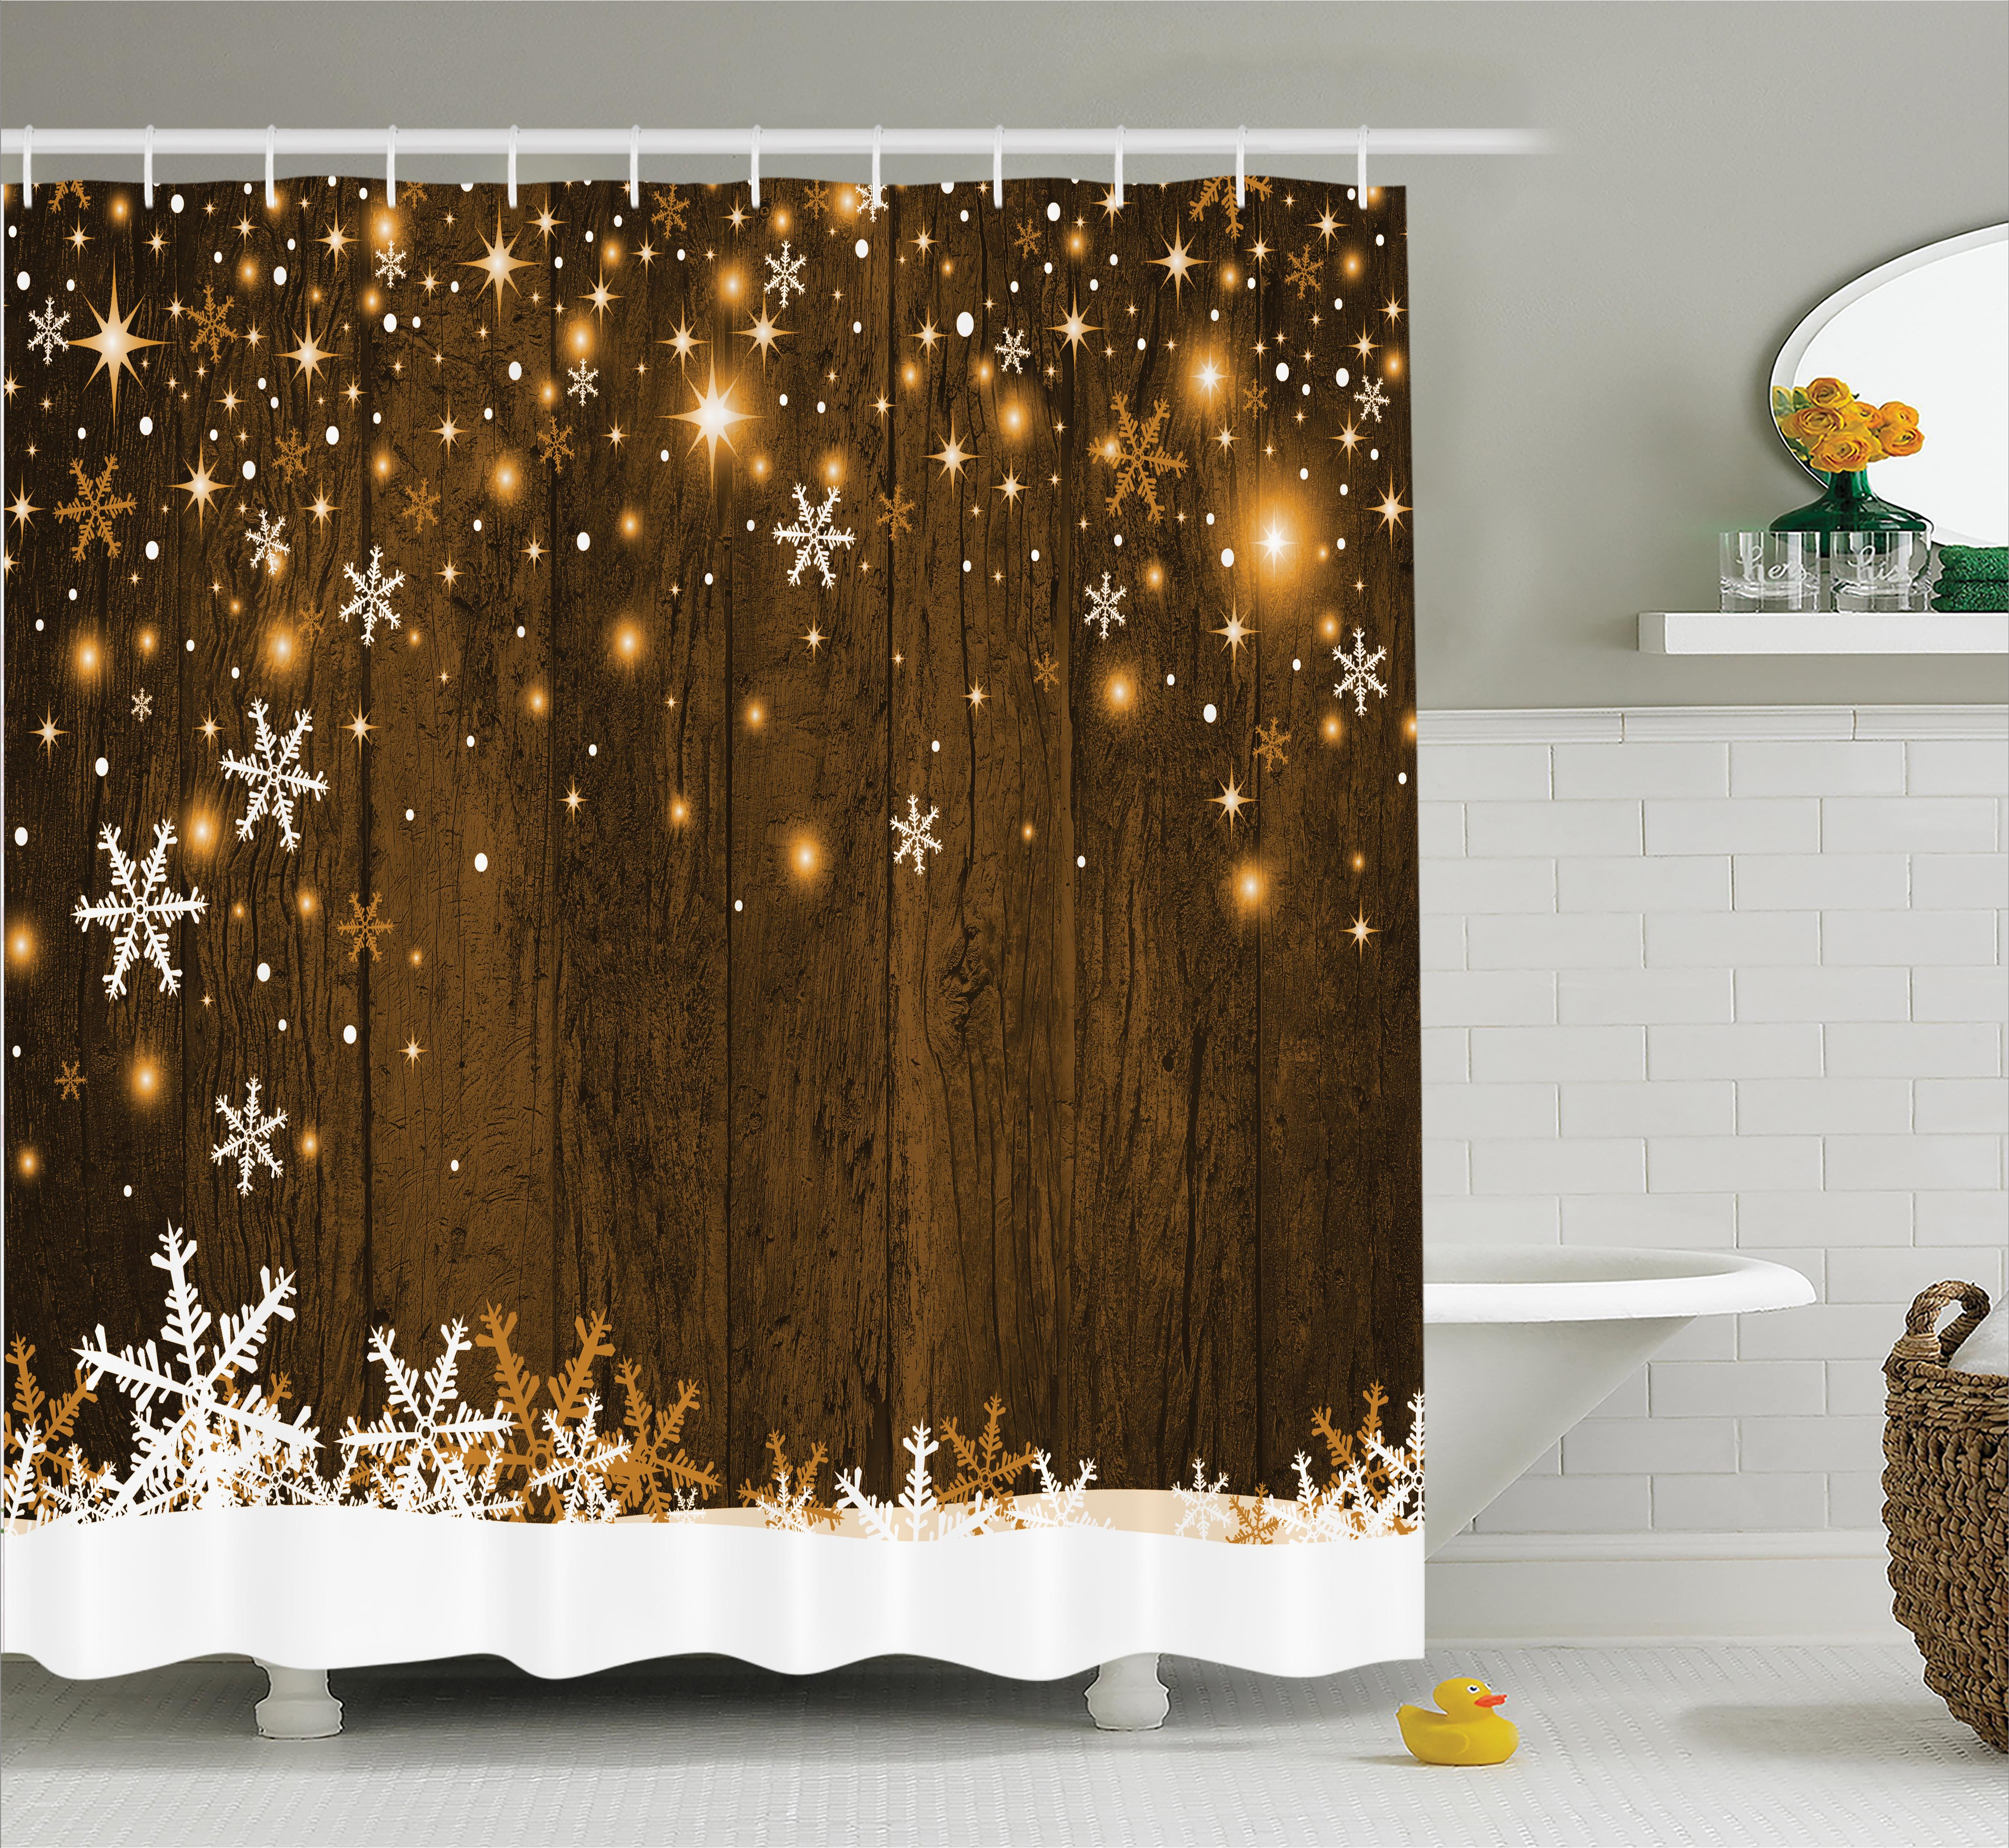 Christmas Decorations Shower Curtain Set, Rustic Wooden Backdrop with Snowflakes and Lights Warm Xmas Celebration Themed, Bathroom Accessories,  Brown White, by Ambesonne